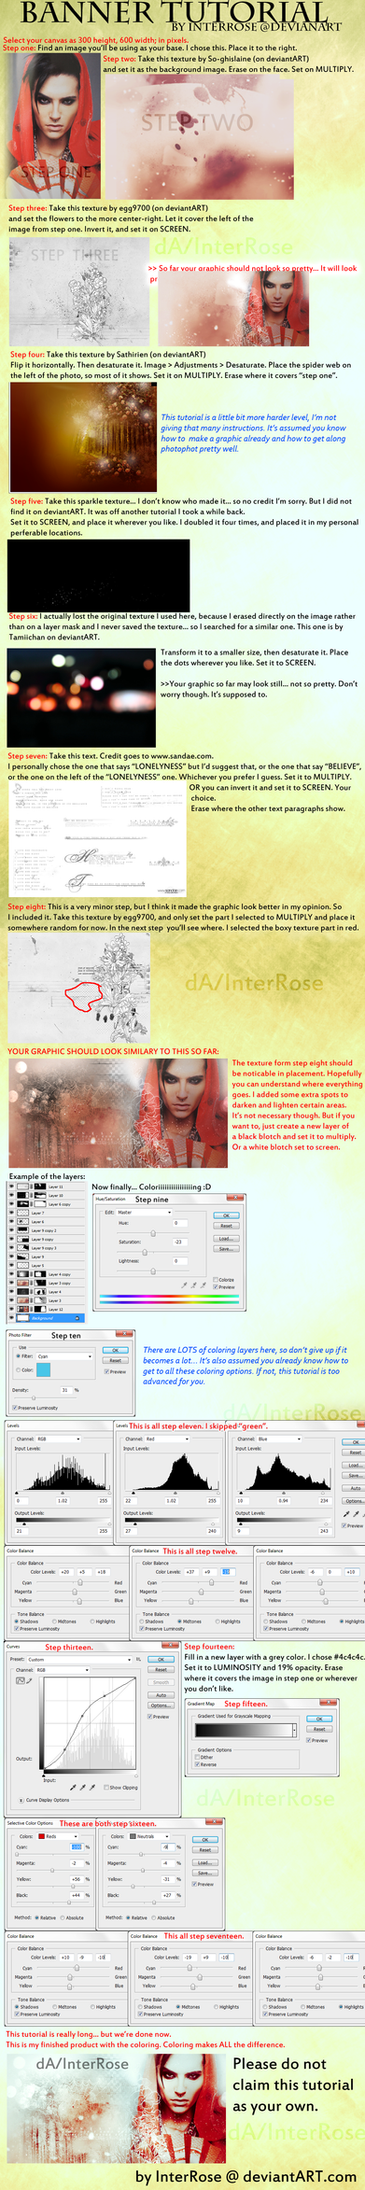 Banner Tutorial by InterRose